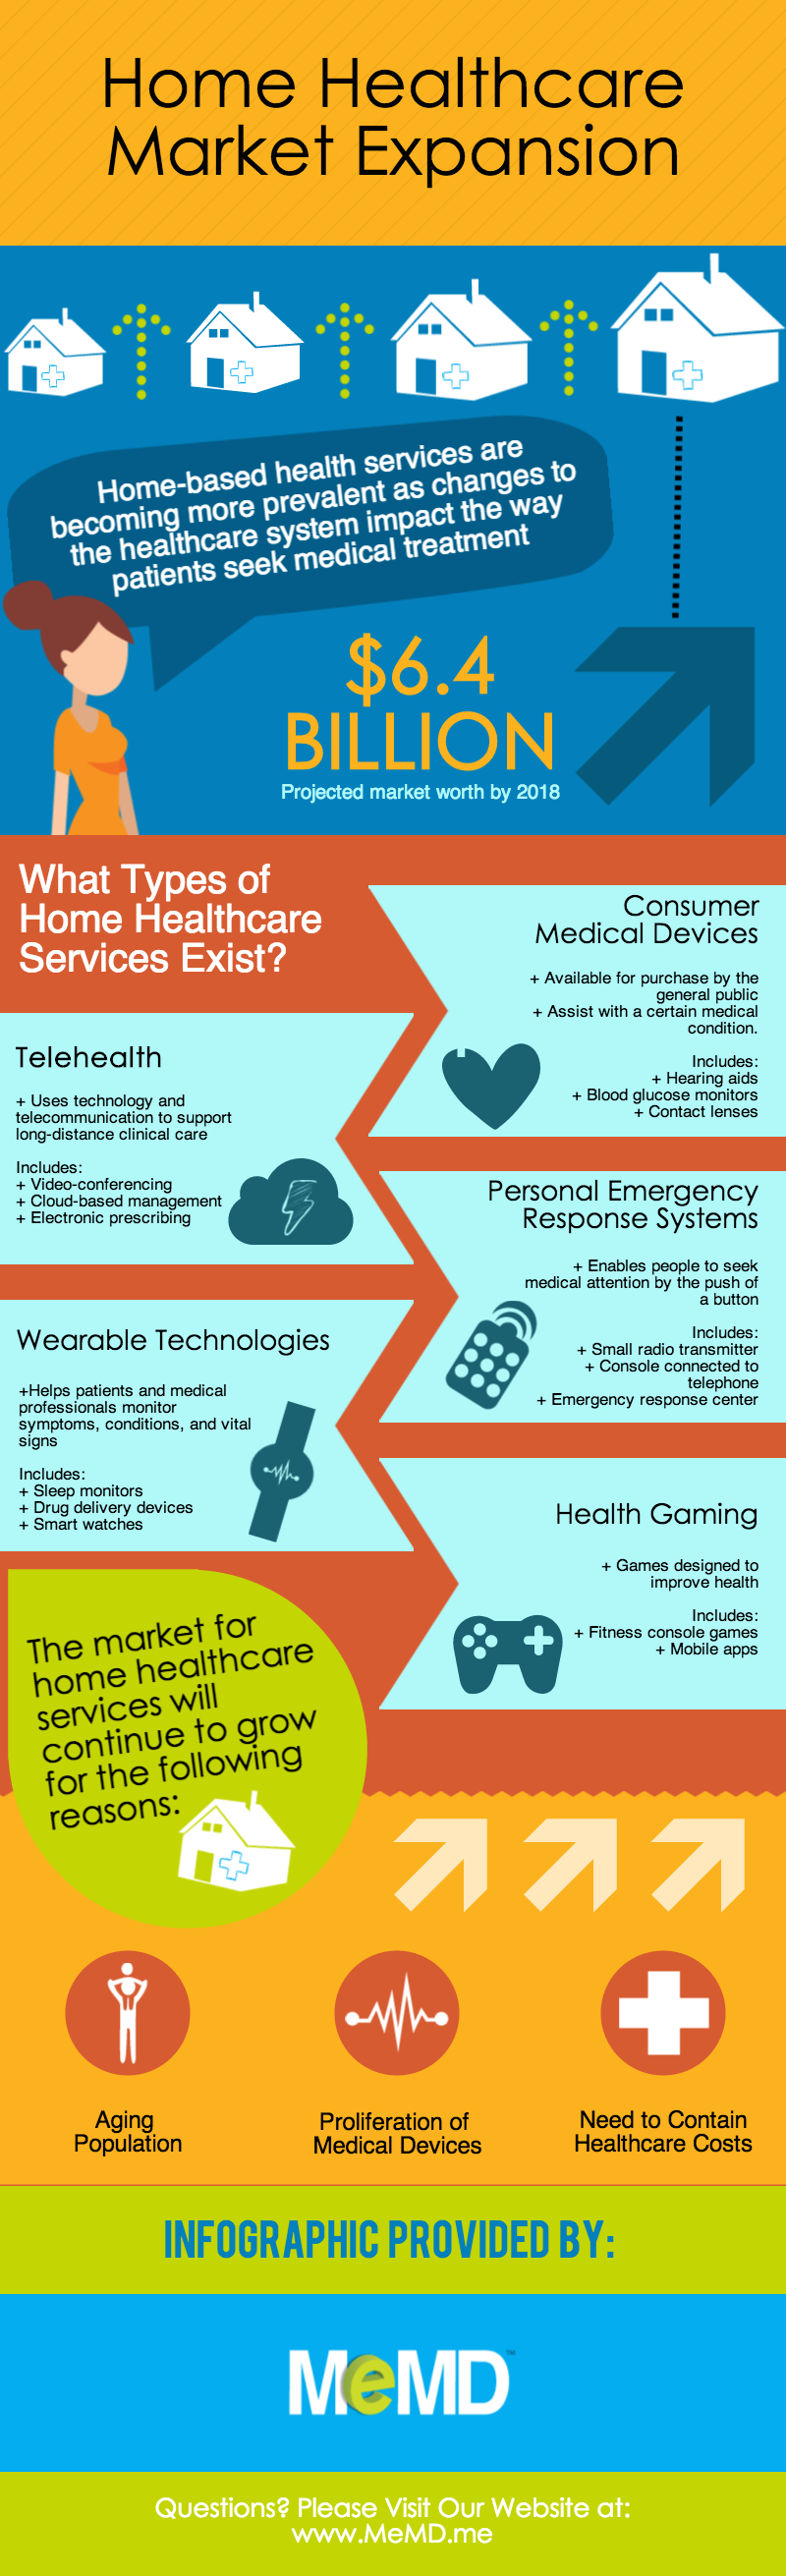 Home Healthcare Market Expansion [Infographic] - MeMD